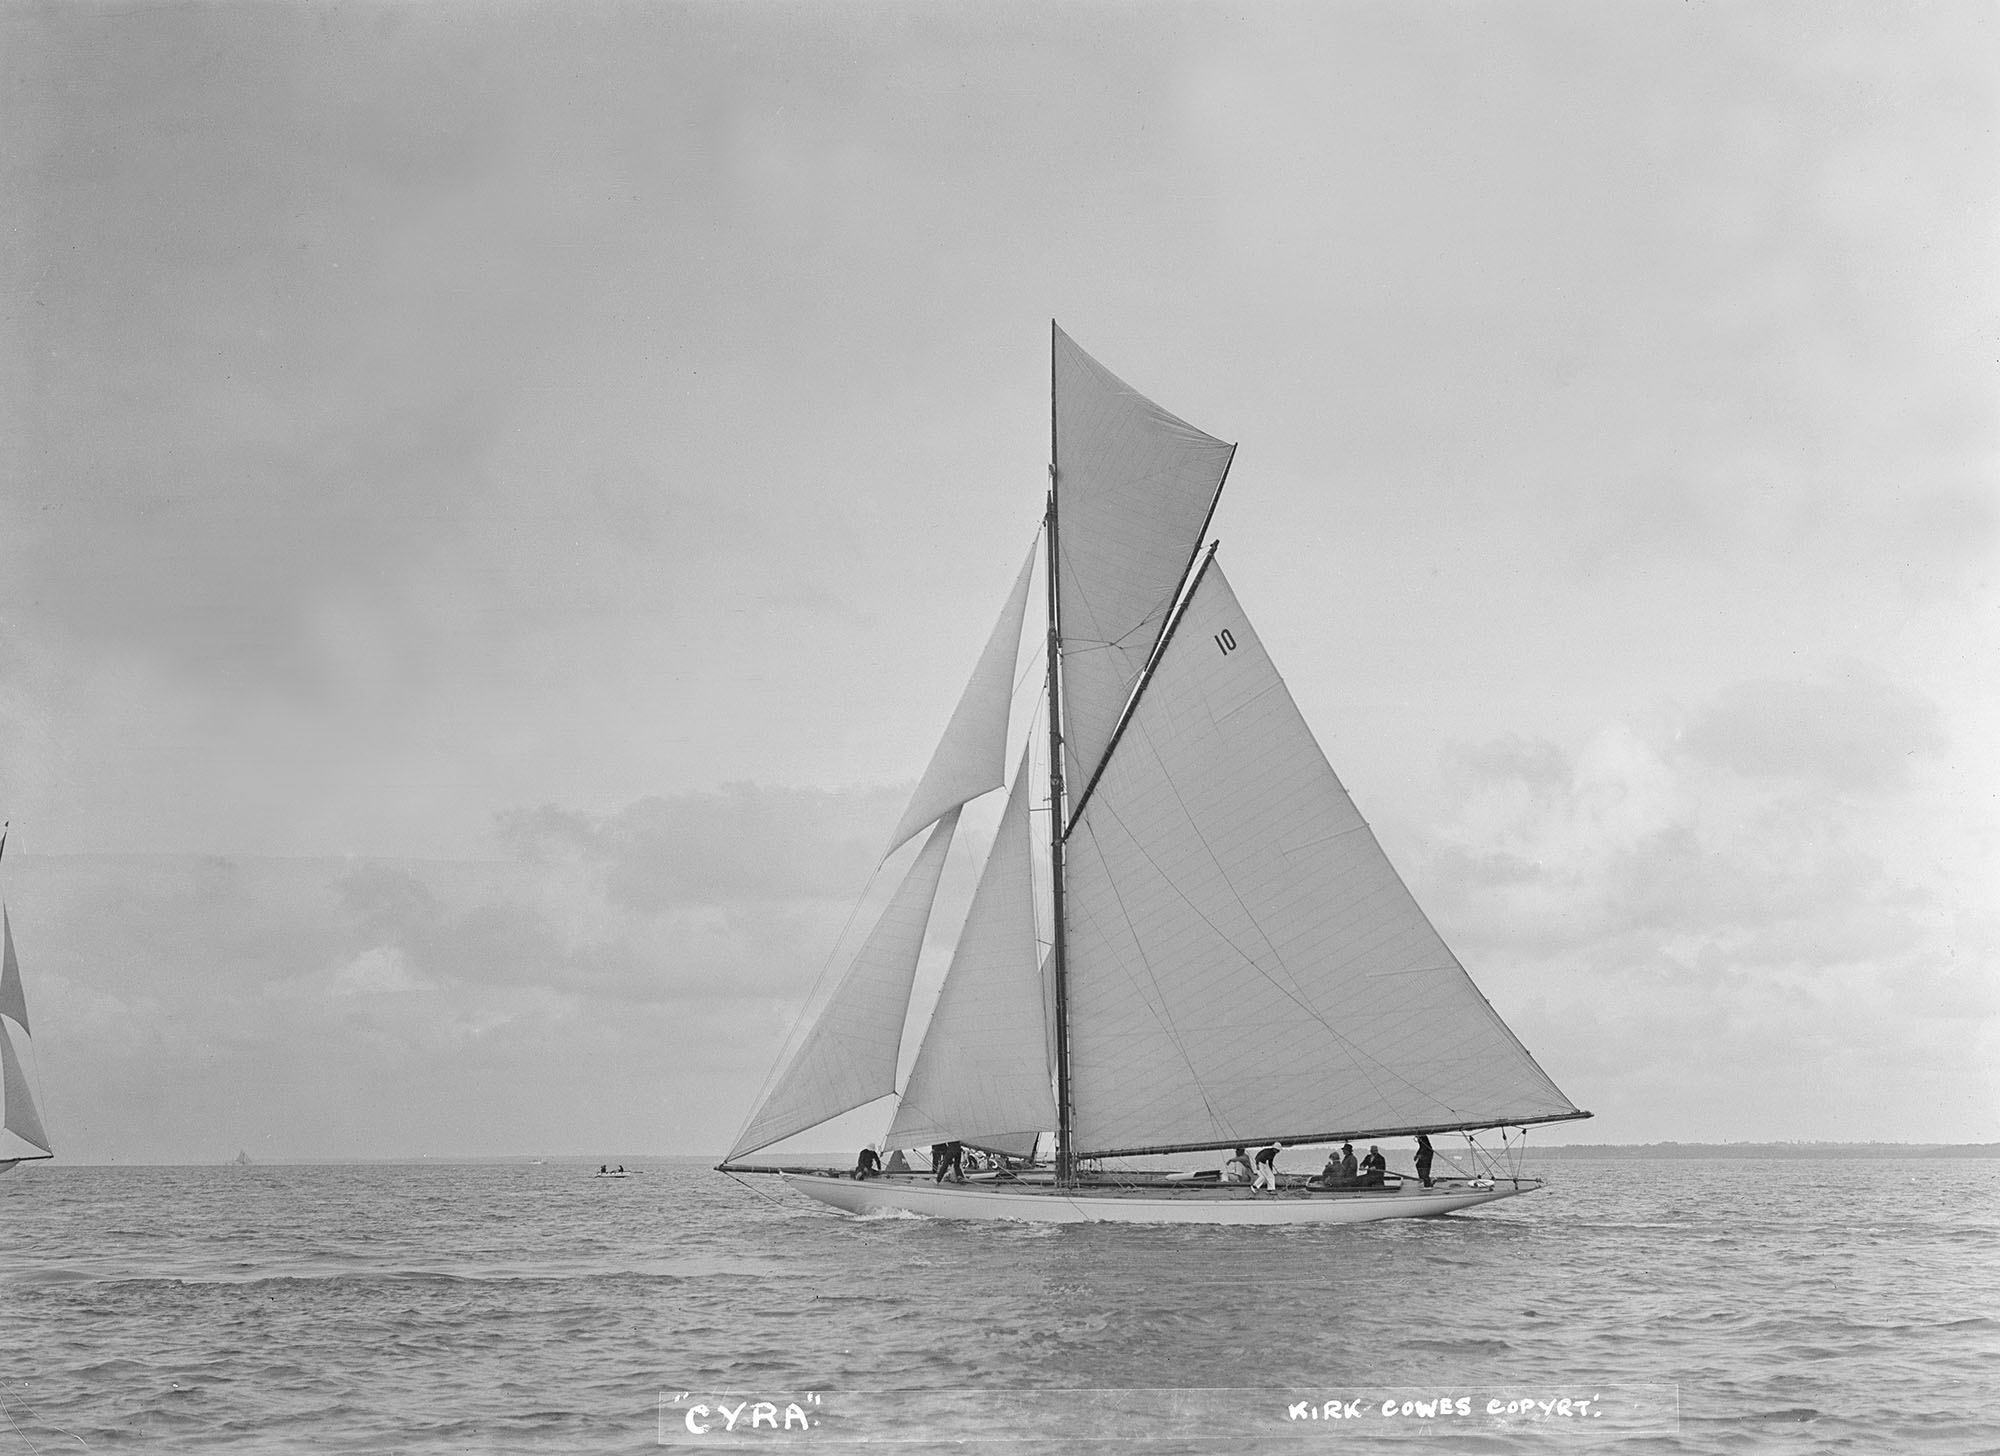 The 12 Metre Gaff Rigged Cyra fine art photography